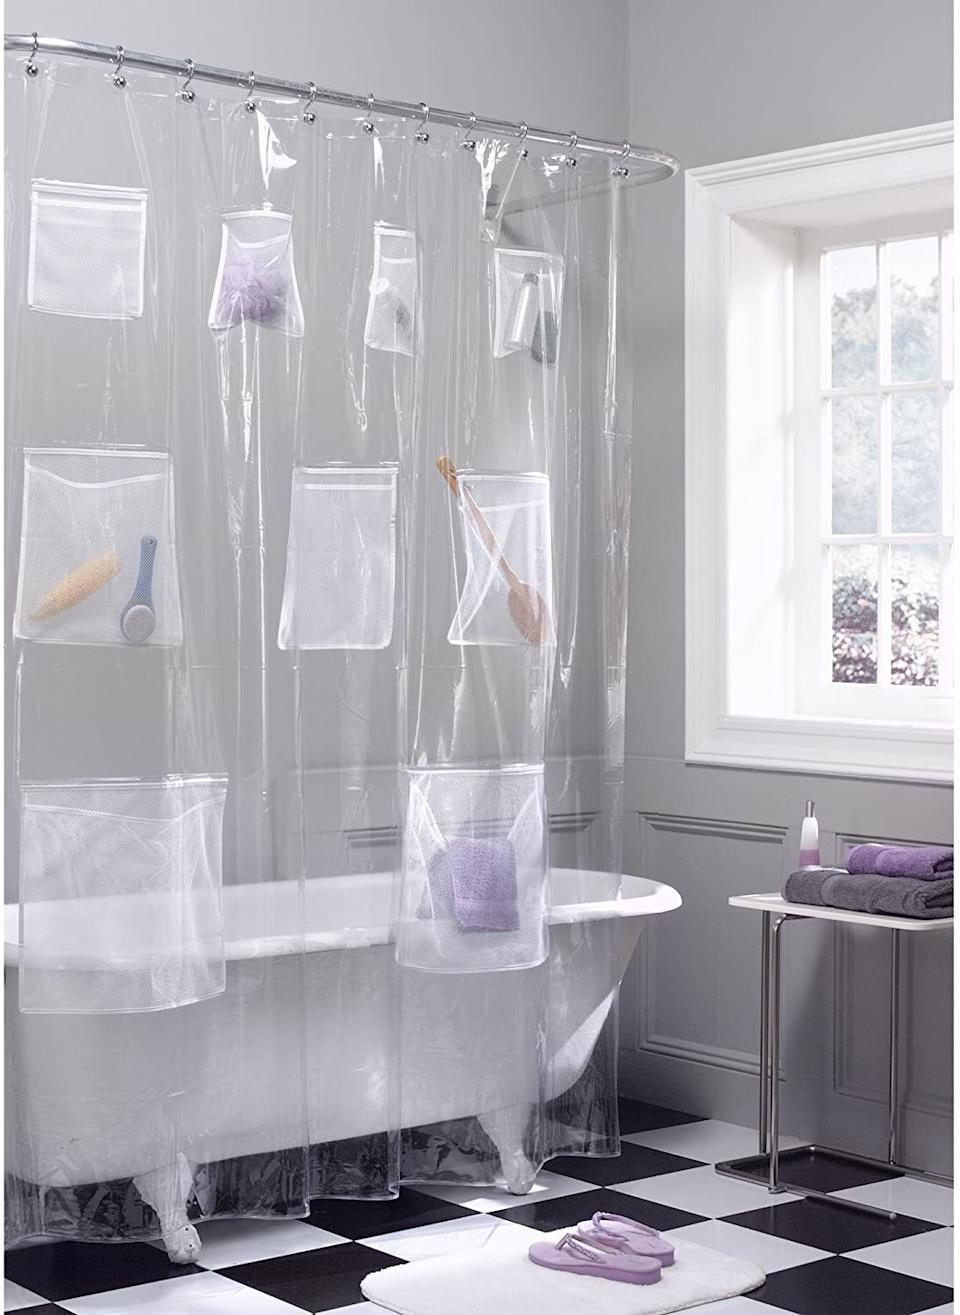 """Made with built-in mesh pockets, this shower curtain liner is perfect for anyone whose shower has too many shampoos trying to live in one habitat. Gone are the days of that supersized conditioner falling on your foot.<br /><br /><strong>Promising review:</strong>""""We are apartment living, so no one in the household could take a shower without crash/boom as you're knocking something down sitting on a shelf or the bathtub rim. This is a game-changer. There are so many pockets with so much room in each I actually have space left over.<strong>My husband's back scrubber, my shampoo and hair care, my daughter's bubble baths, bath floofies, all fit with room to spare.</strong>And the pockets are all a nice height so I'm not crouching to find anything. The curtain is clear so I didn't have to change the 'pretty' one for decorative purposes. I am super pleased."""" —<a href=""""https://www.amazon.com/dp/B003ZHVDAG?tag=huffpost-bfsyndication-20&ascsubtag=5834502%2C12%2C46%2Cd%2C0%2C0%2C0%2C962%3A1%3B901%3A2%3B900%3A2%3B974%3A3%3B975%3A2%3B982%3A2%2C16267132%2C0"""" target=""""_blank"""" rel=""""noopener noreferrer"""">goodnite.graci<br /></a><br /><strong>Get it from Amazon for<a href=""""https://www.amazon.com/dp/B003ZHVDAG?tag=huffpost-bfsyndication-20&ascsubtag=5834502%2C12%2C46%2Cd%2C0%2C0%2C0%2C962%3A1%3B901%3A2%3B900%3A2%3B974%3A3%3B975%3A2%3B982%3A2%2C16267132%2C0"""" target=""""_blank"""" rel=""""noopener noreferrer"""">$18.67</a>.</strong>"""